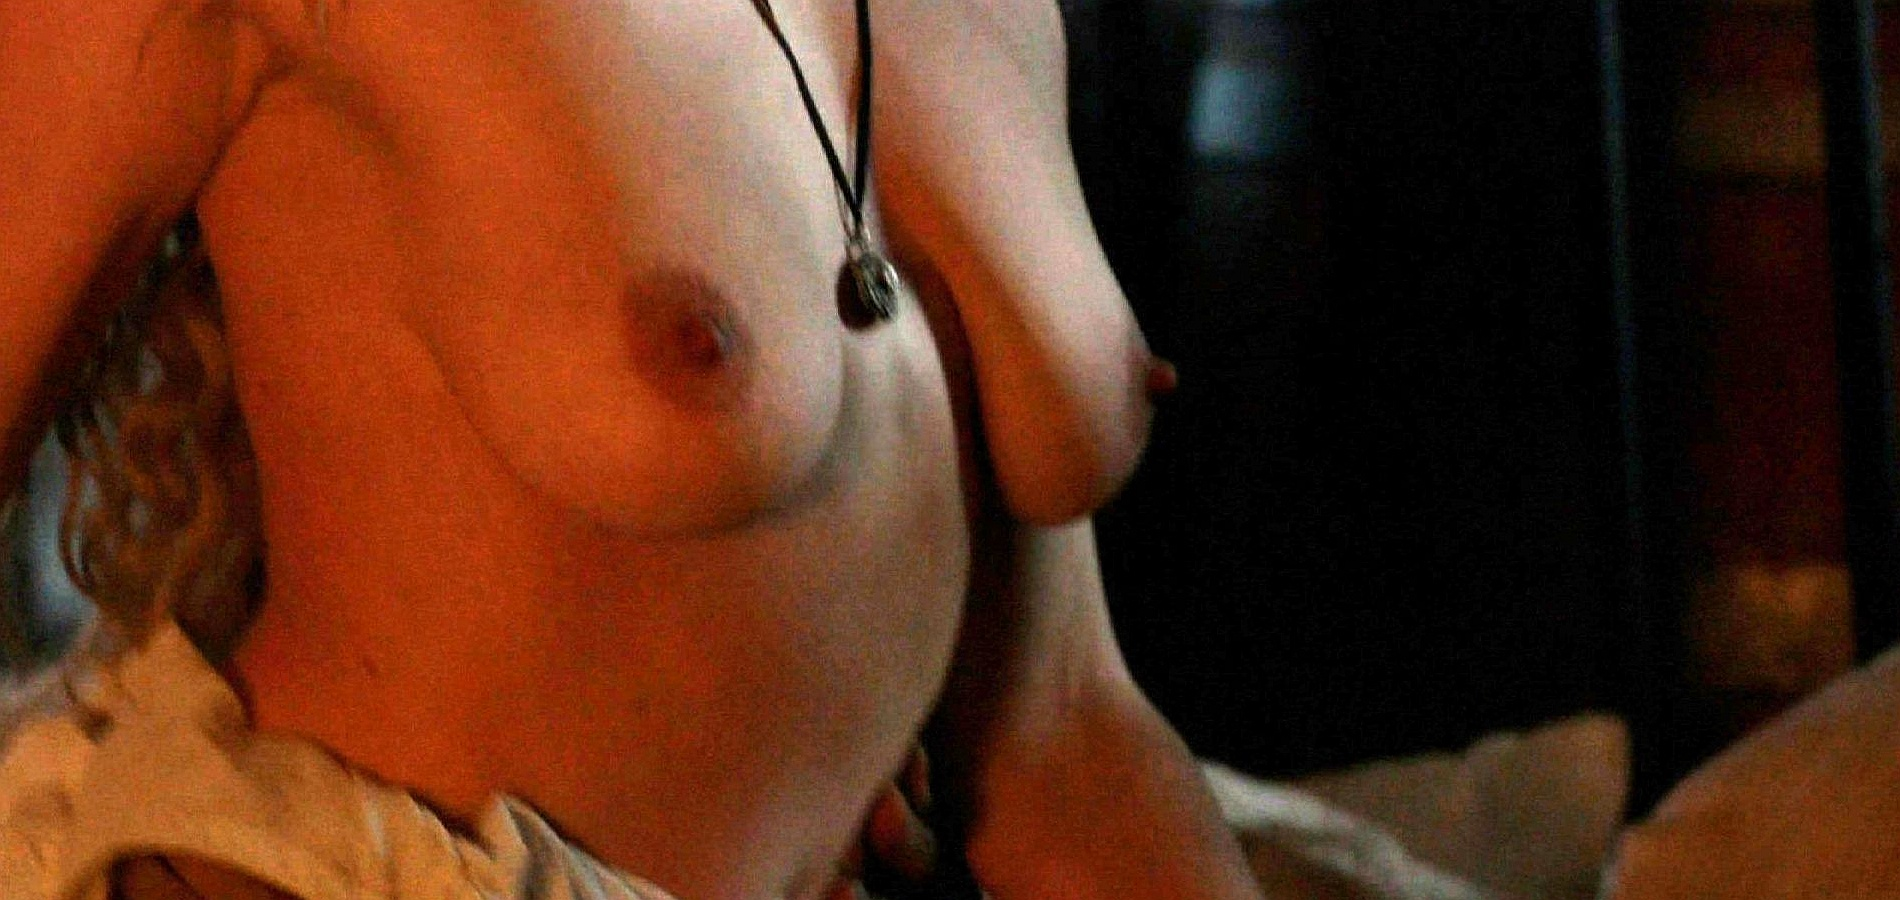 Rebecca ferguson nude scene mission impossible